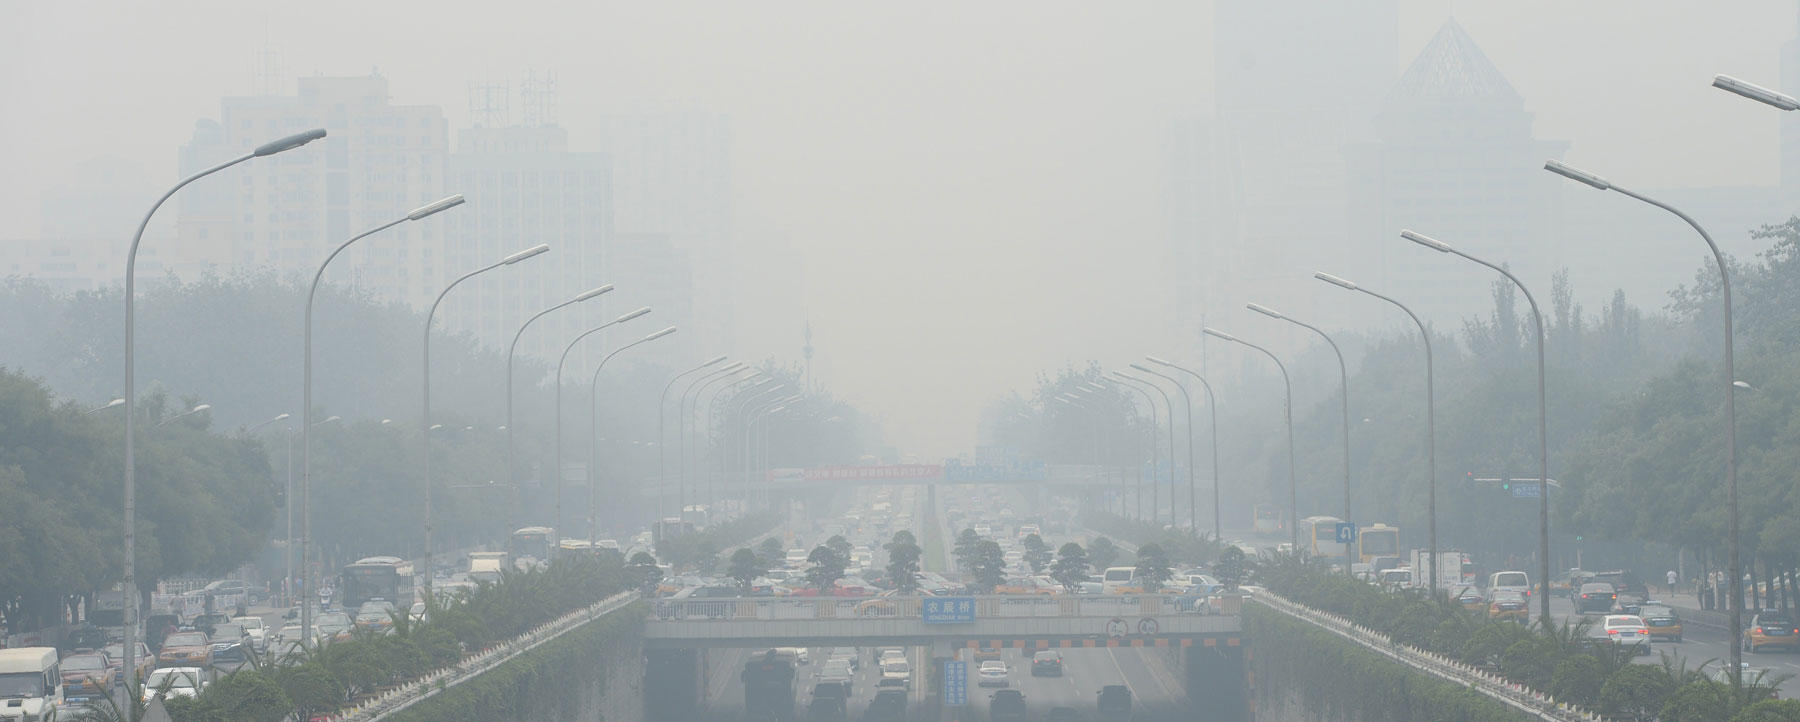 Beijing pollution in June 2015